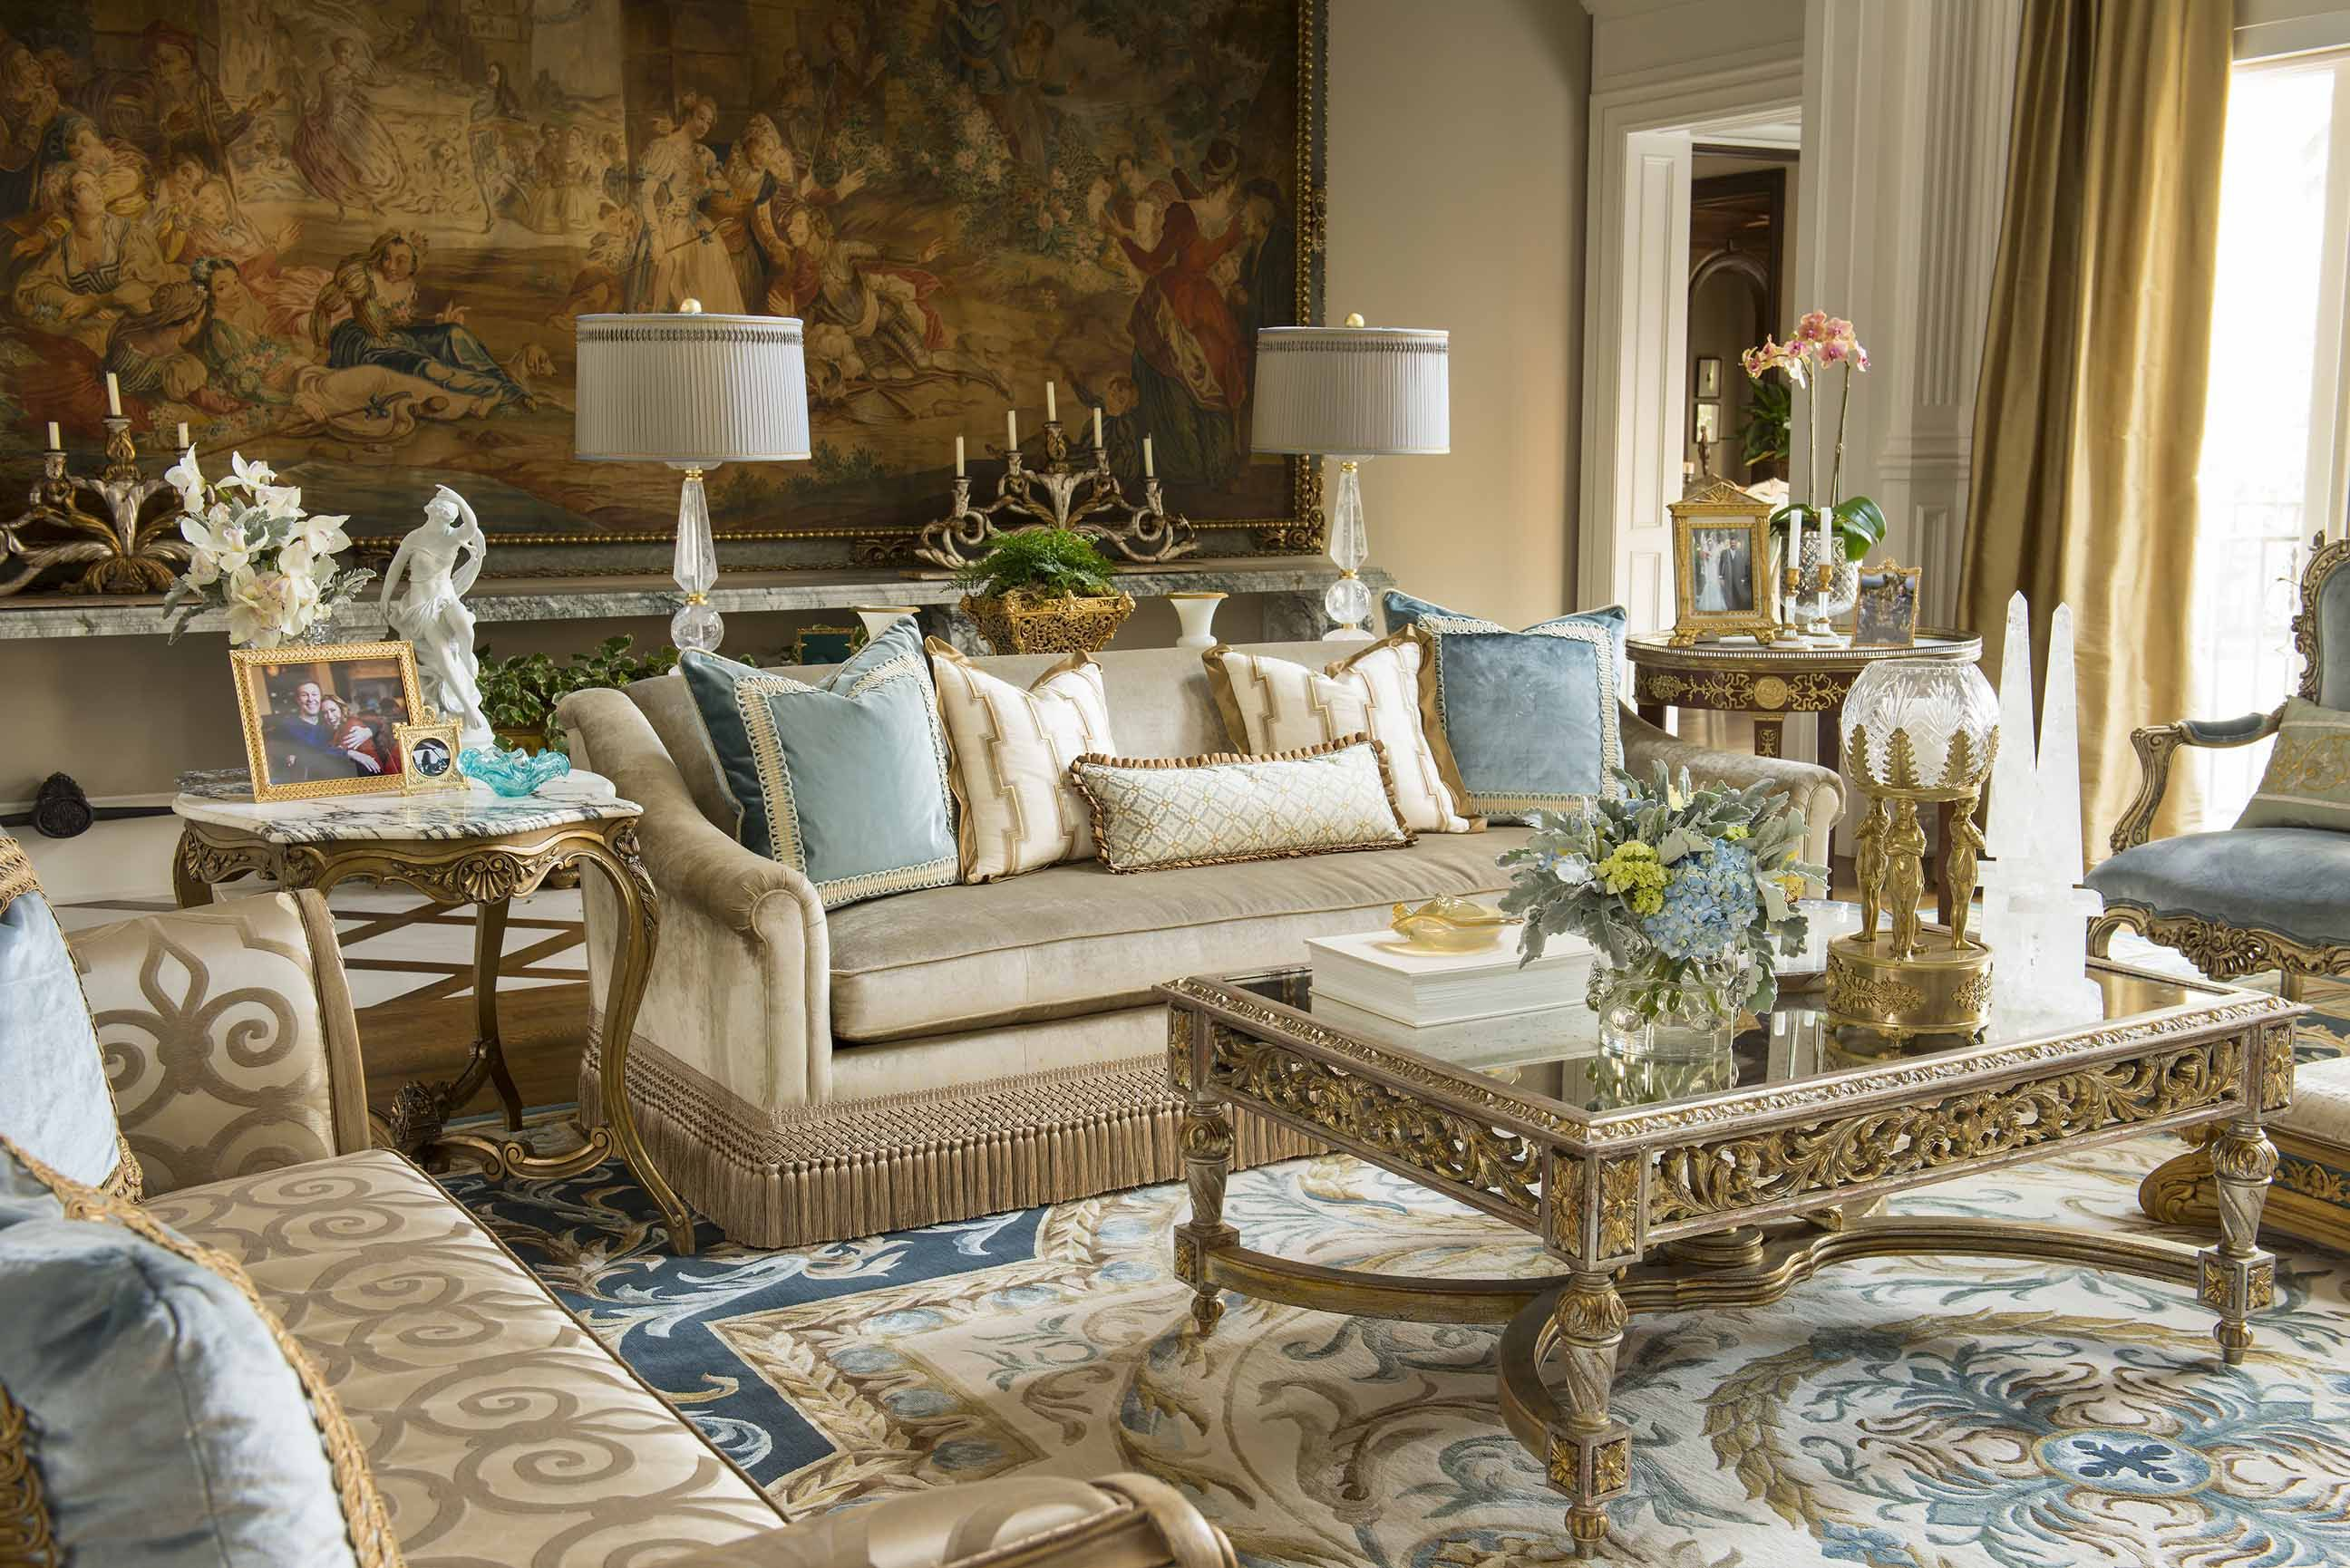 Superior Dallas Design Group Interiors Serving The DFW Area For Over Thirty Years,  Excellence And Personal Commitment Is Evident In Every Project.